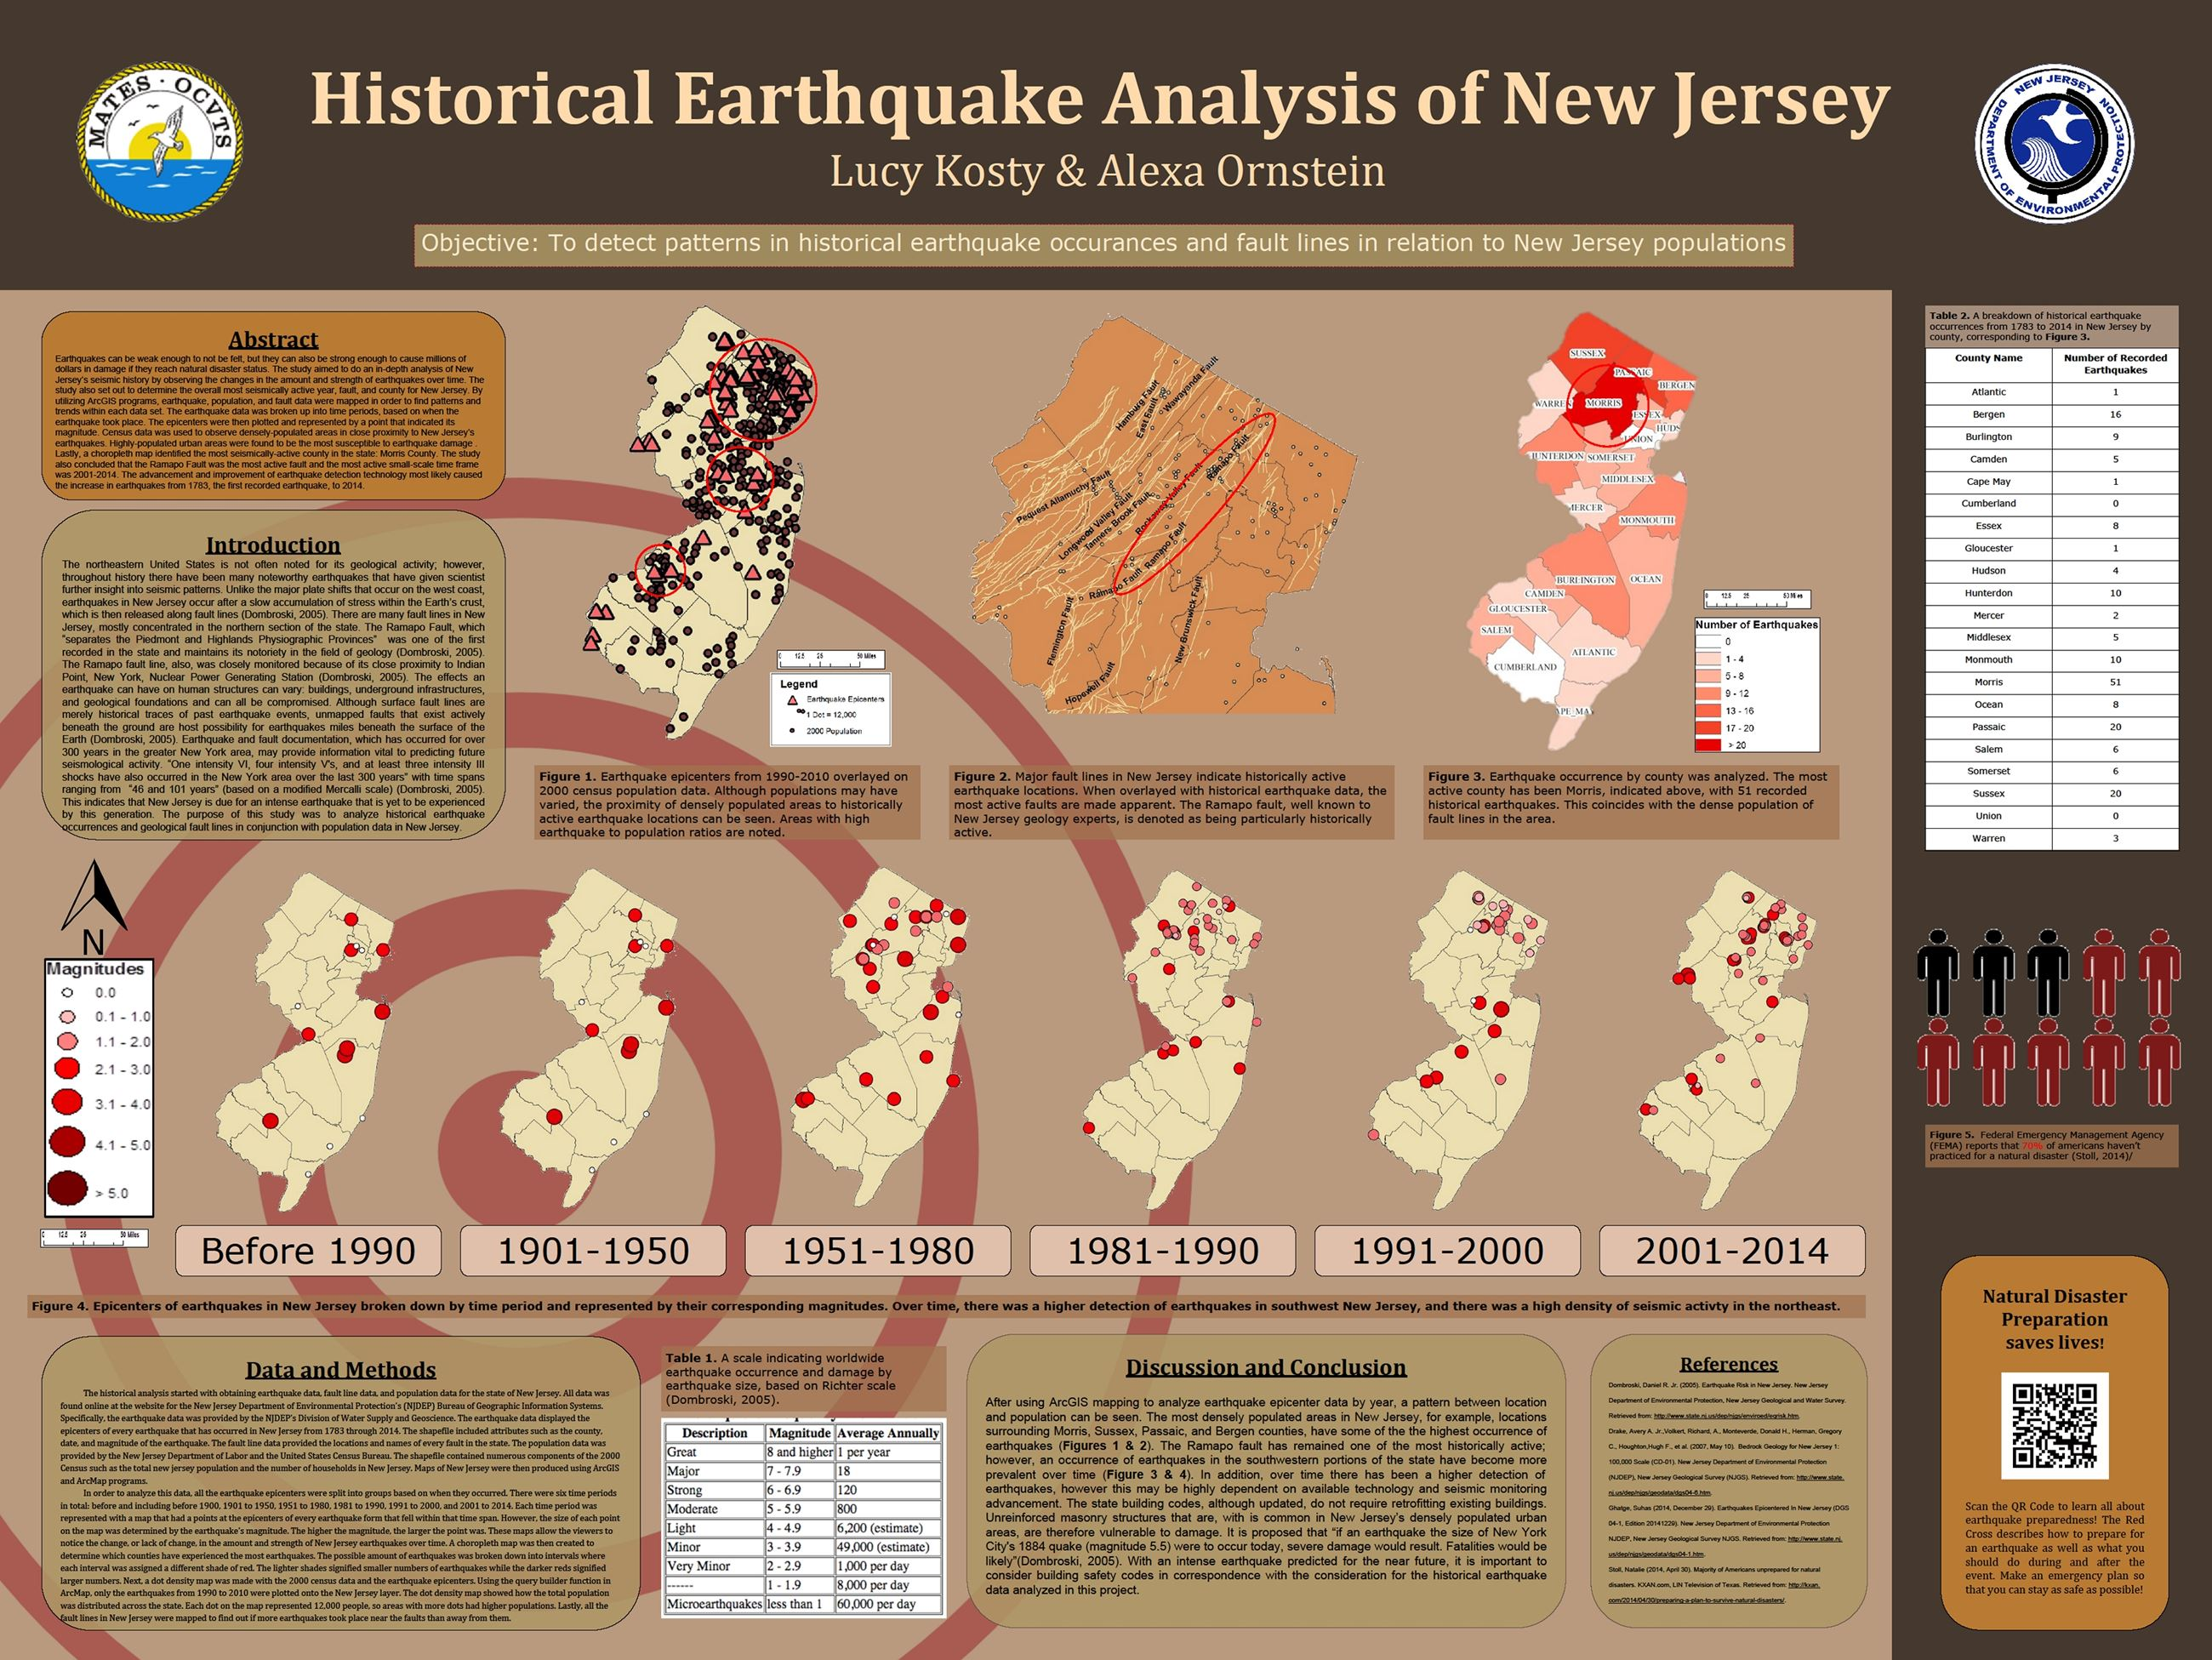 Number 15 Historical Earthquake Analysis of New Jersey